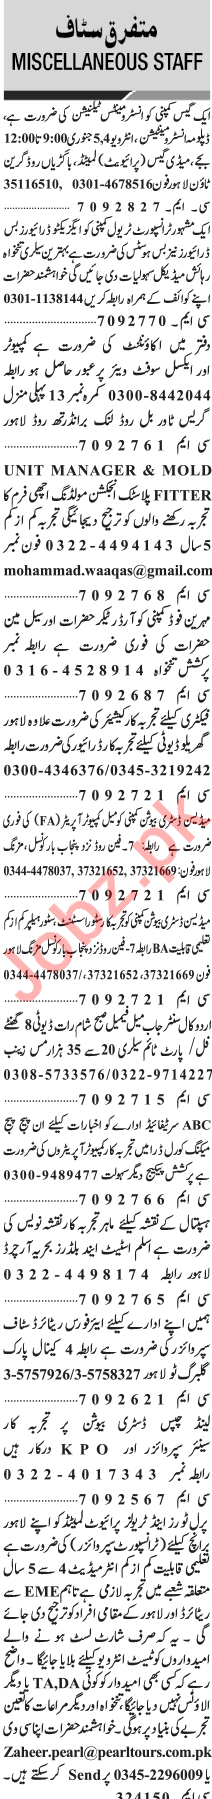 Jang Sunday Classified Ads 3rd Jan 2021 for Multiple Staff